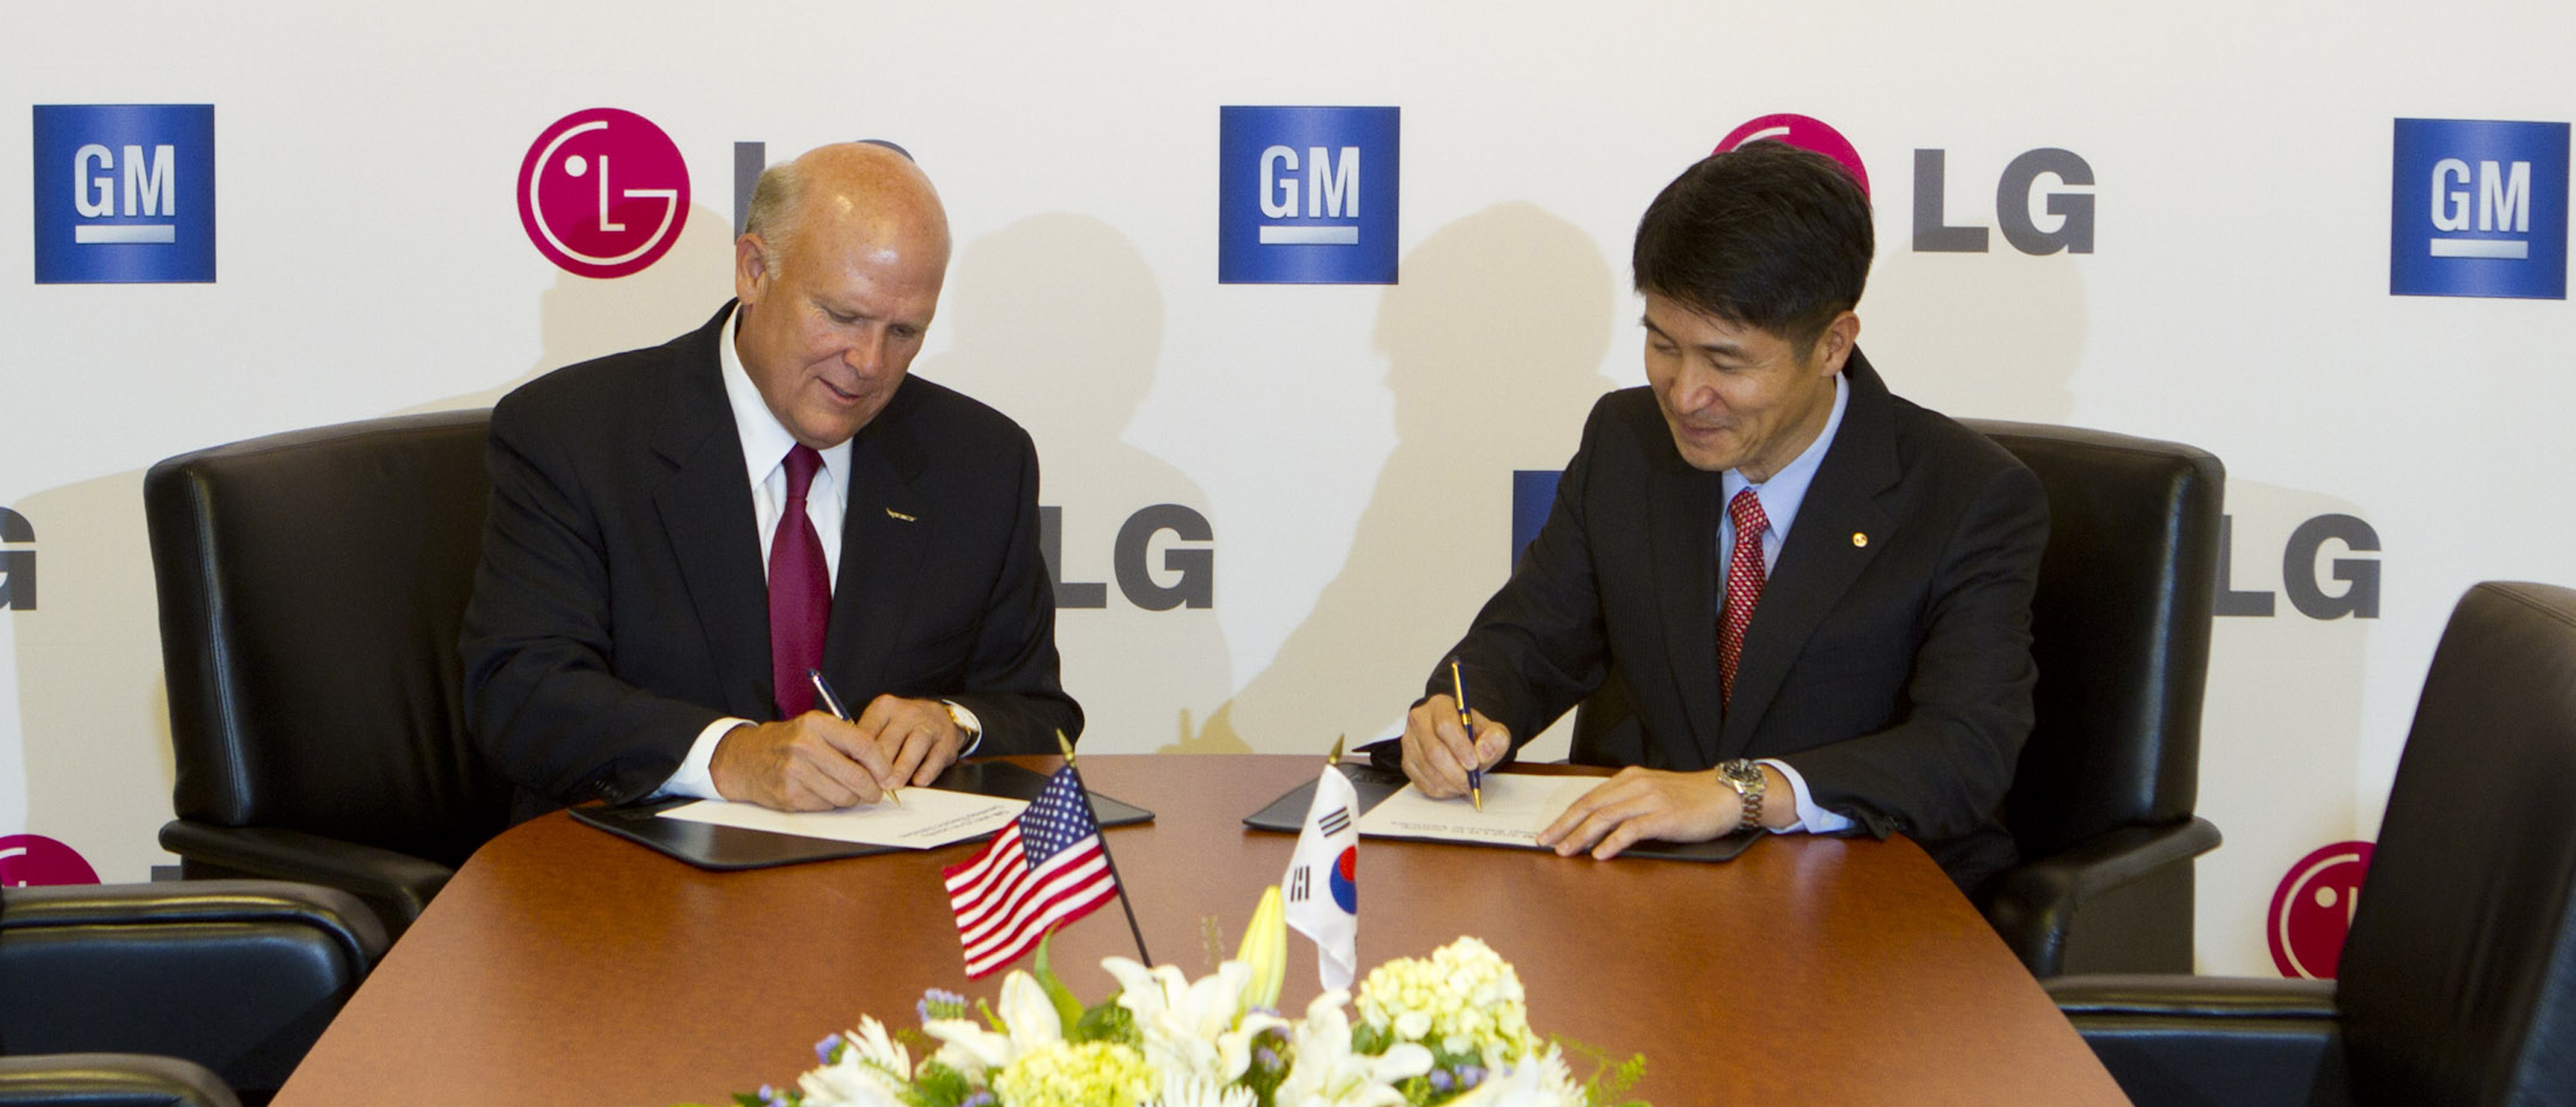 GM and LG to Jointly Develop EVs